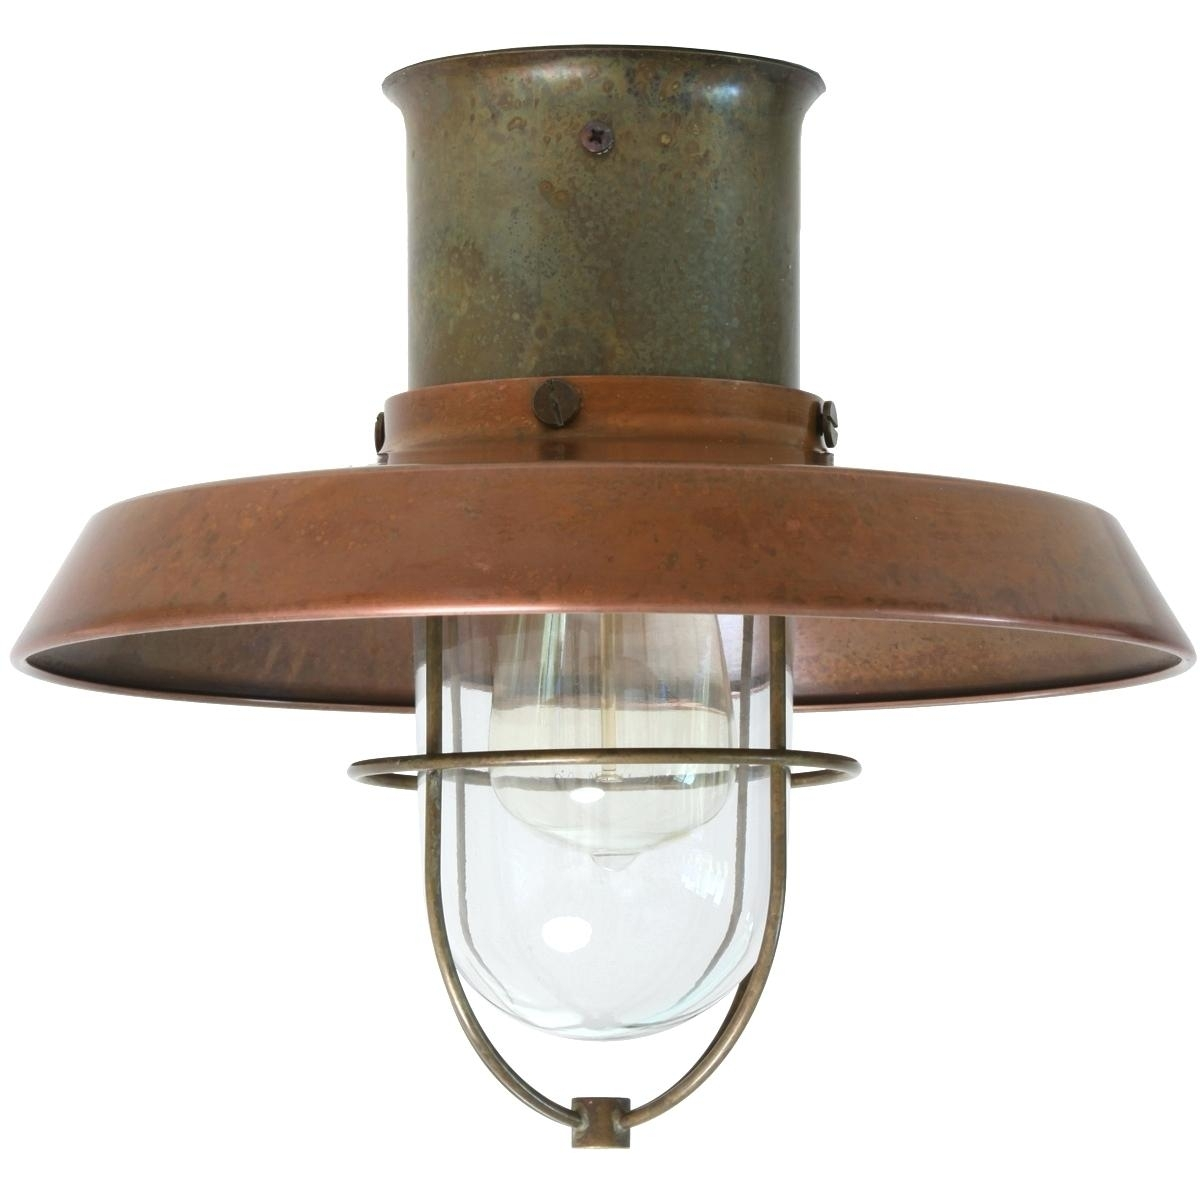 Outdoor Ceiling Lights Ing Fans With Amazon For Patio Led Porch In Outdoor Ceiling Lights At Amazon (#13 of 15)